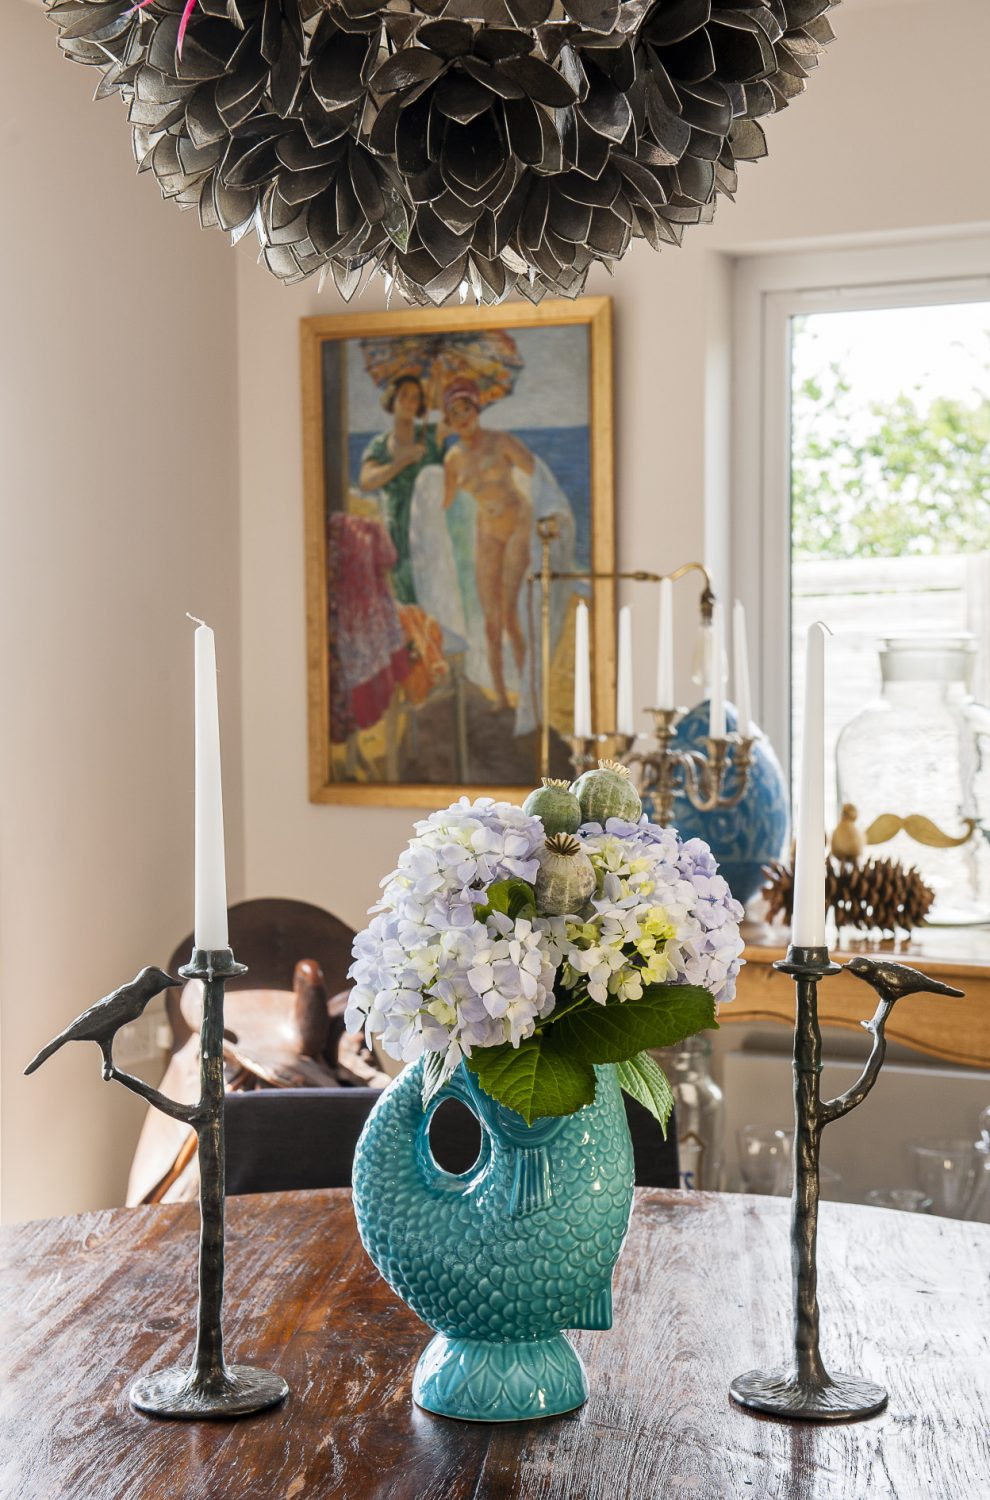 The blue fish 'gluggle jug' is from Harborough Nurseries. The bronze candlesticks were a gift